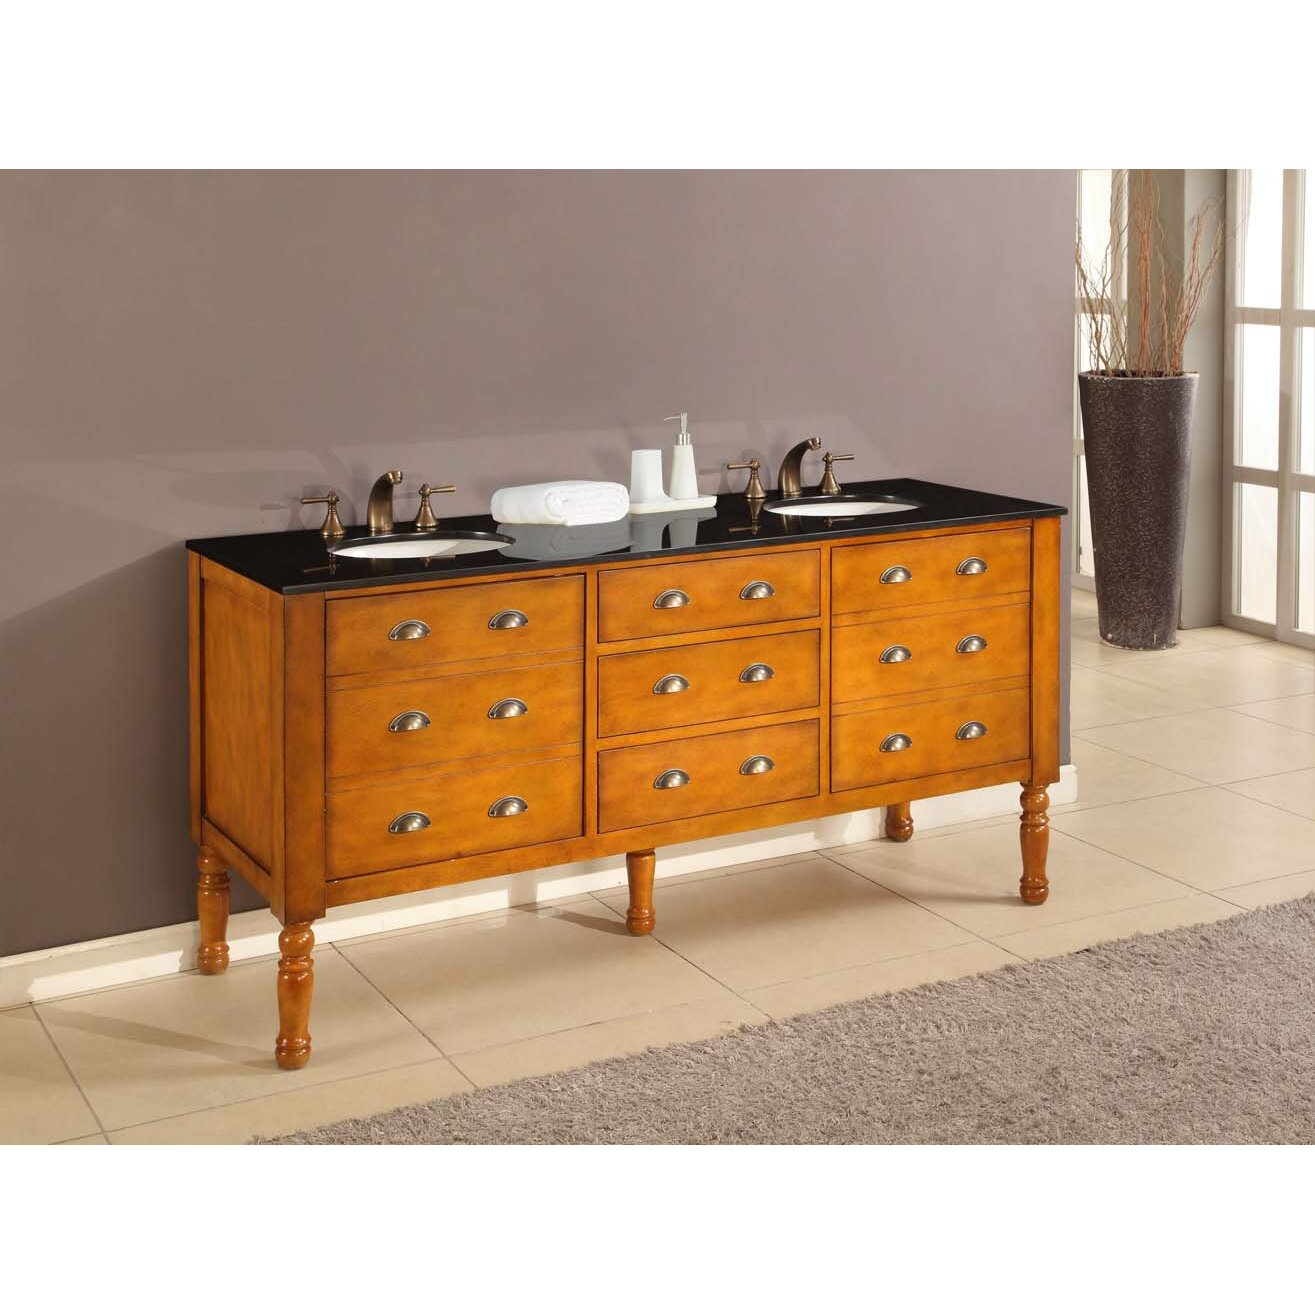 Direct vanity sink harvest 70 double bathroom vanity set wayfair Bathroom sink and vanity sets